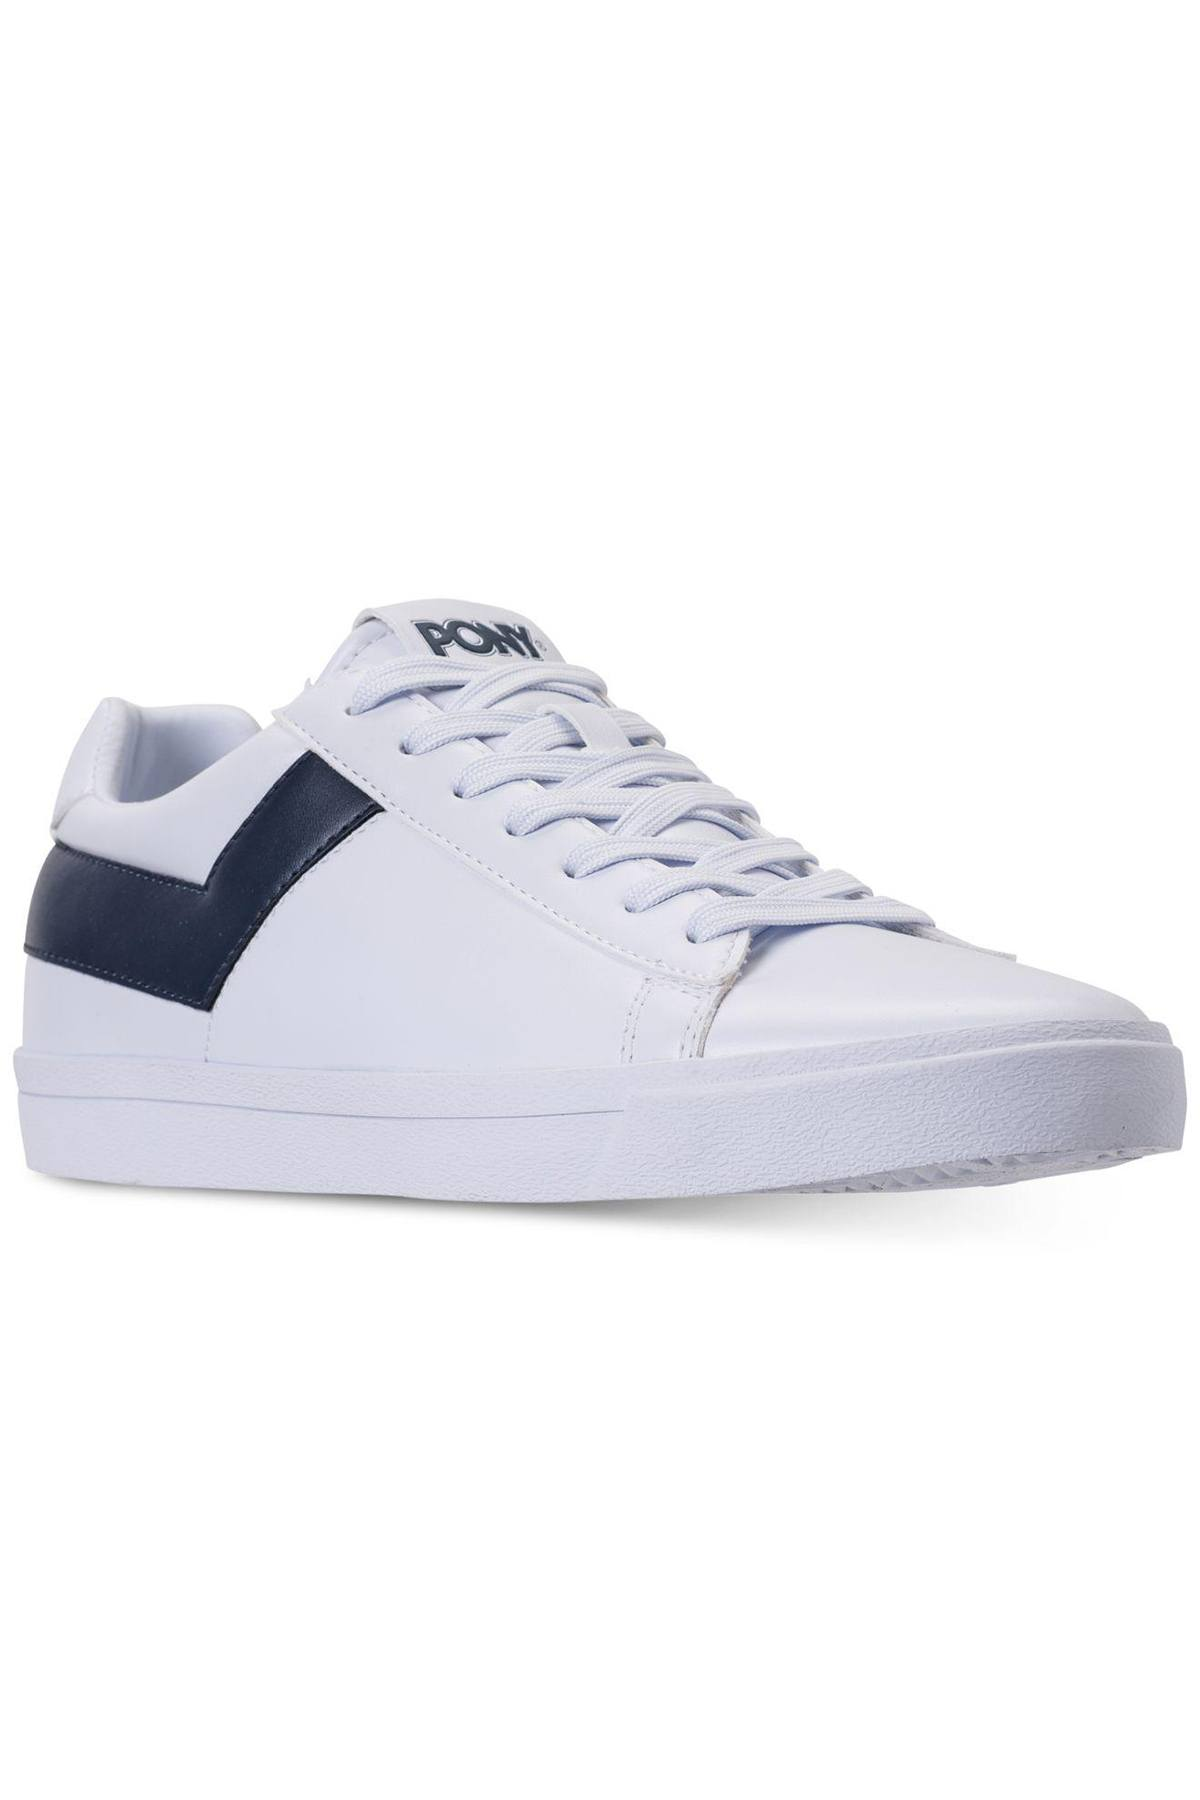 Pony White/Navy Top-Star Lo Core Sneakers